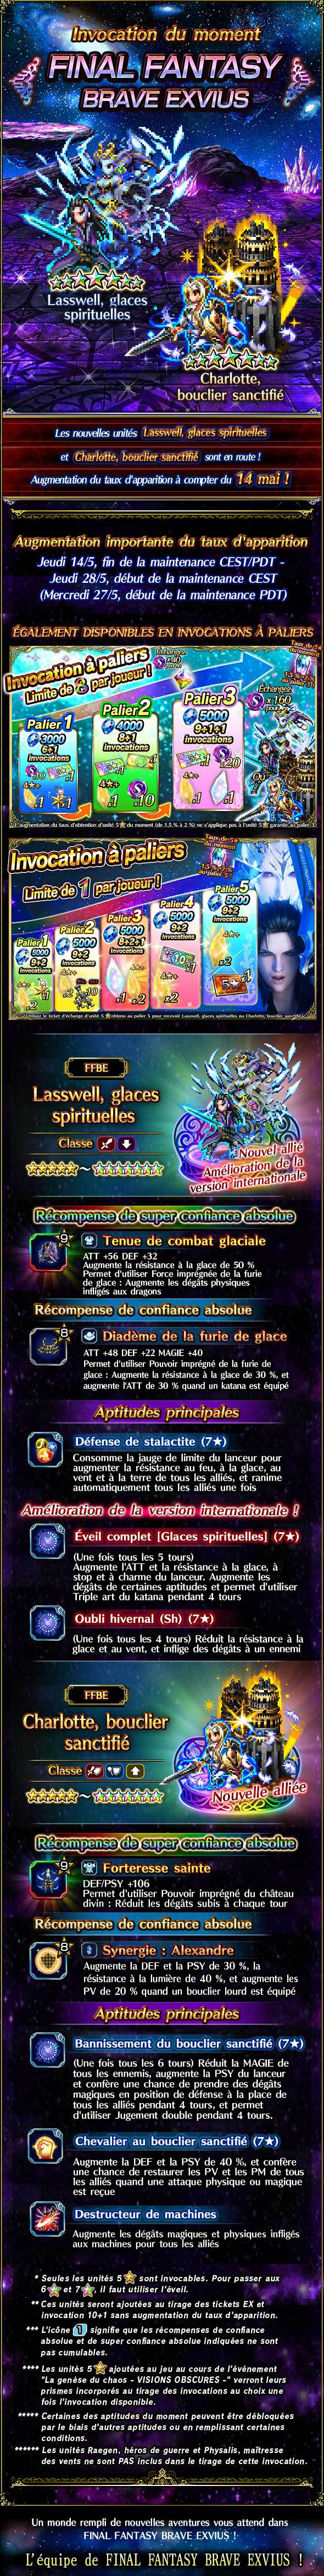 Invocations du moment, boutique d'échange, tickets 5★ garantie et tickets d'échange - FFBE (MILasswell/HACharlotte) - du 14/05 au 28/05/20 20200512MILasswellHACharlotteFeaturedSummonv2